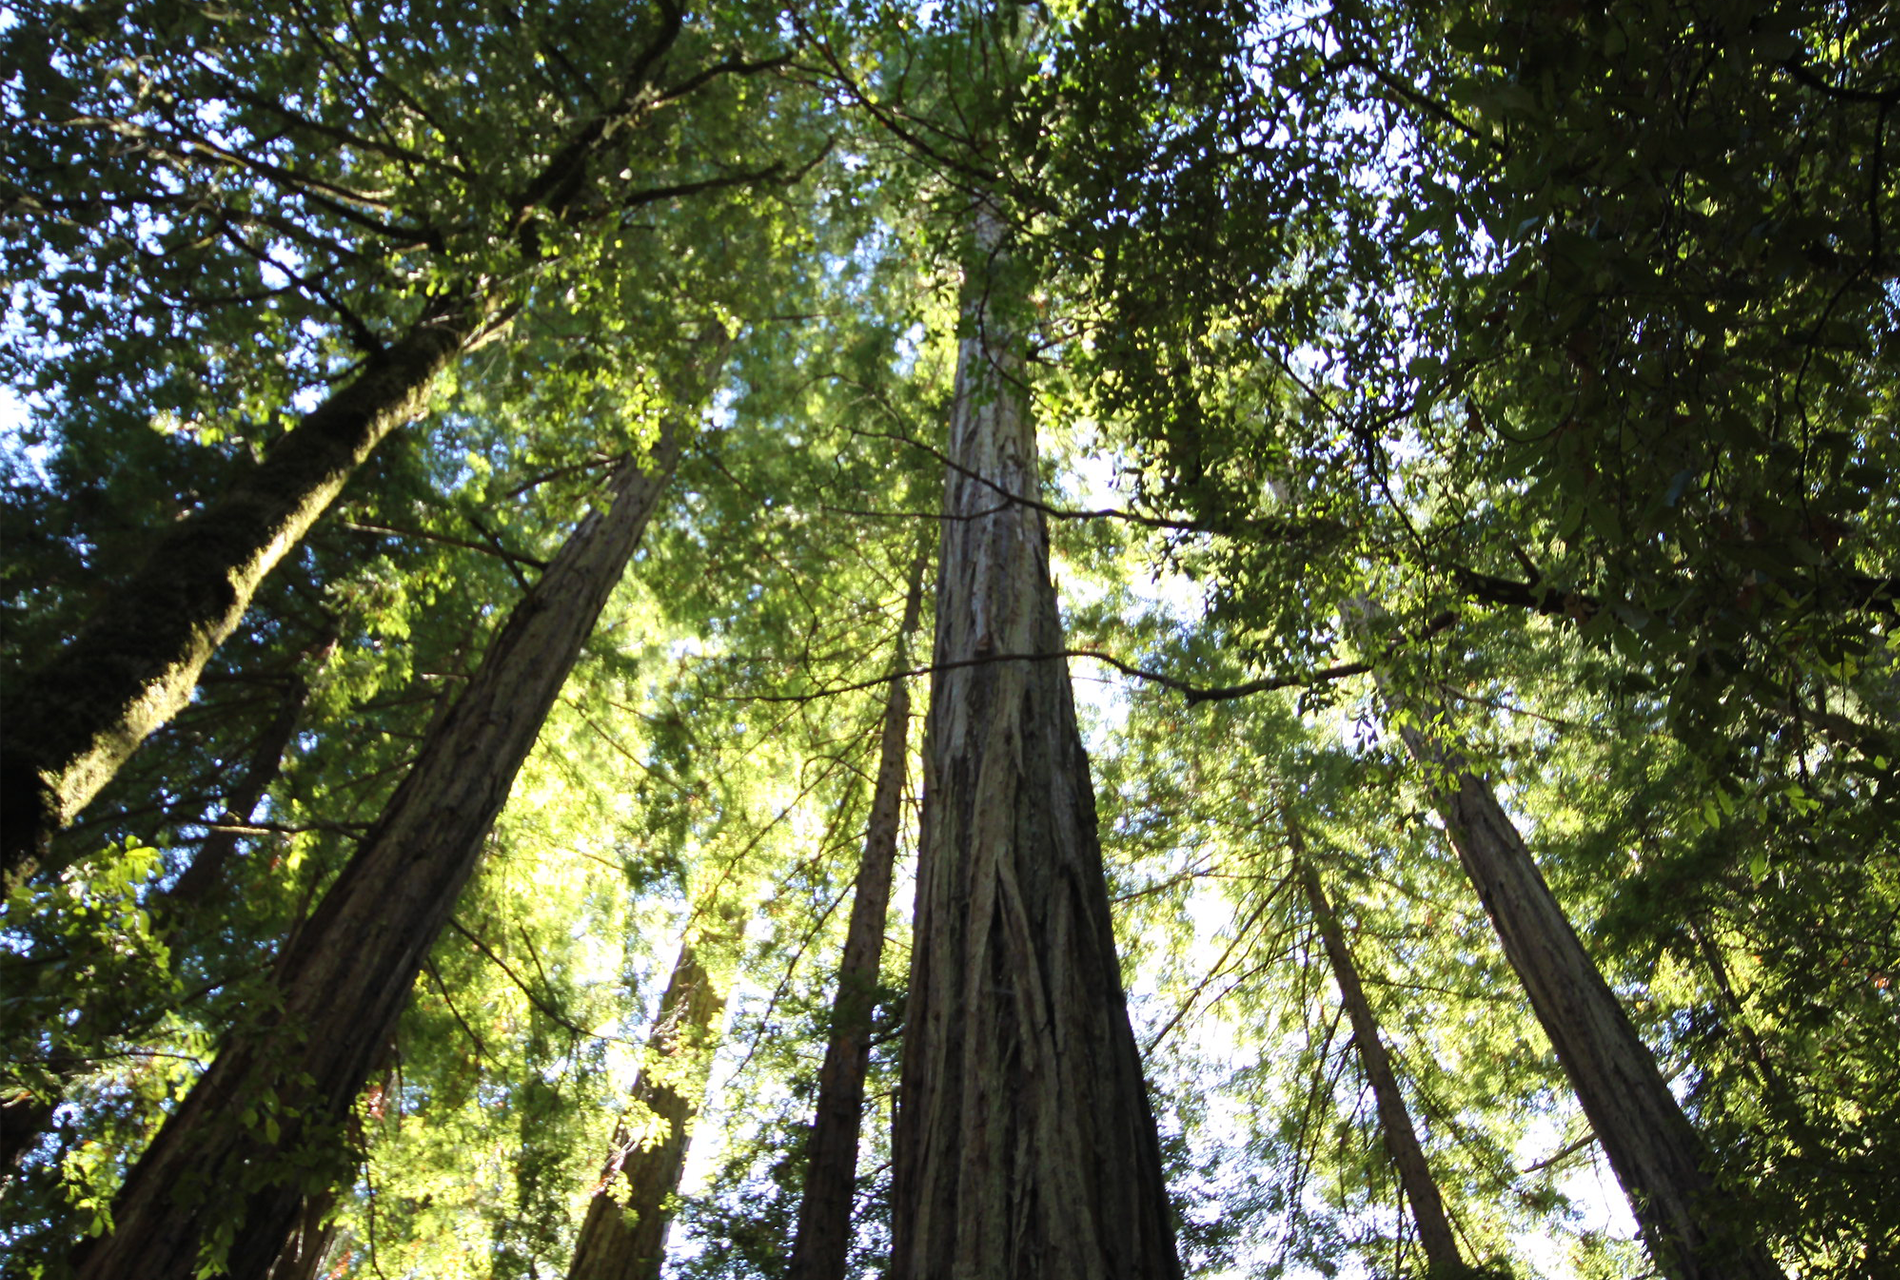 Redwoods tower over Big Basin State Park before the CZU fire complex ravaged much of the area beginning last week. Many of the park's massive, old-growth redwoods have reportedly survived the worst of the damage.